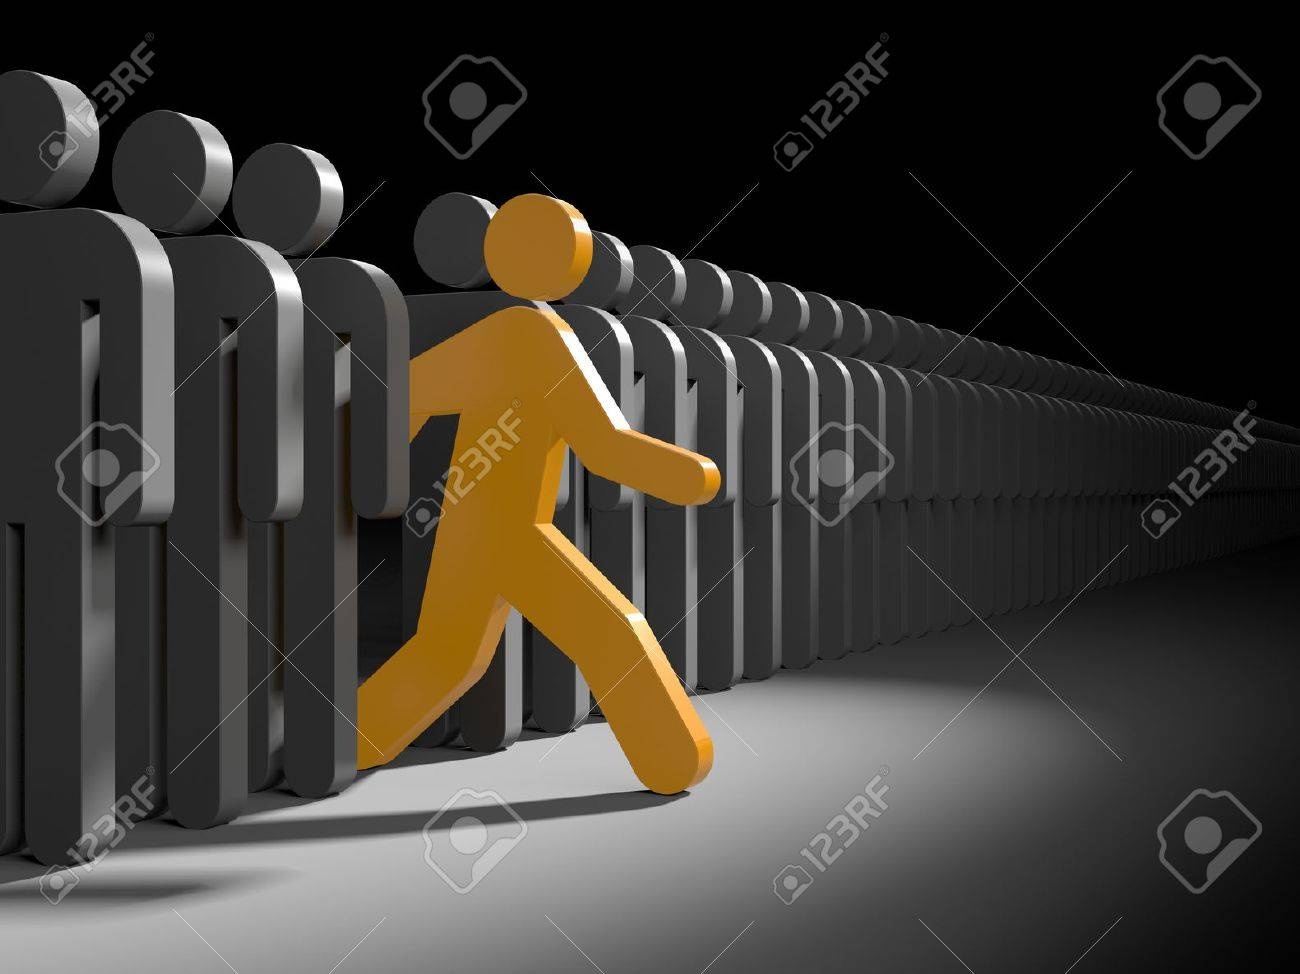 Orange character runs from the crowd of gray characters. Symbolizes leadership and originality Stock Photo - 40394118